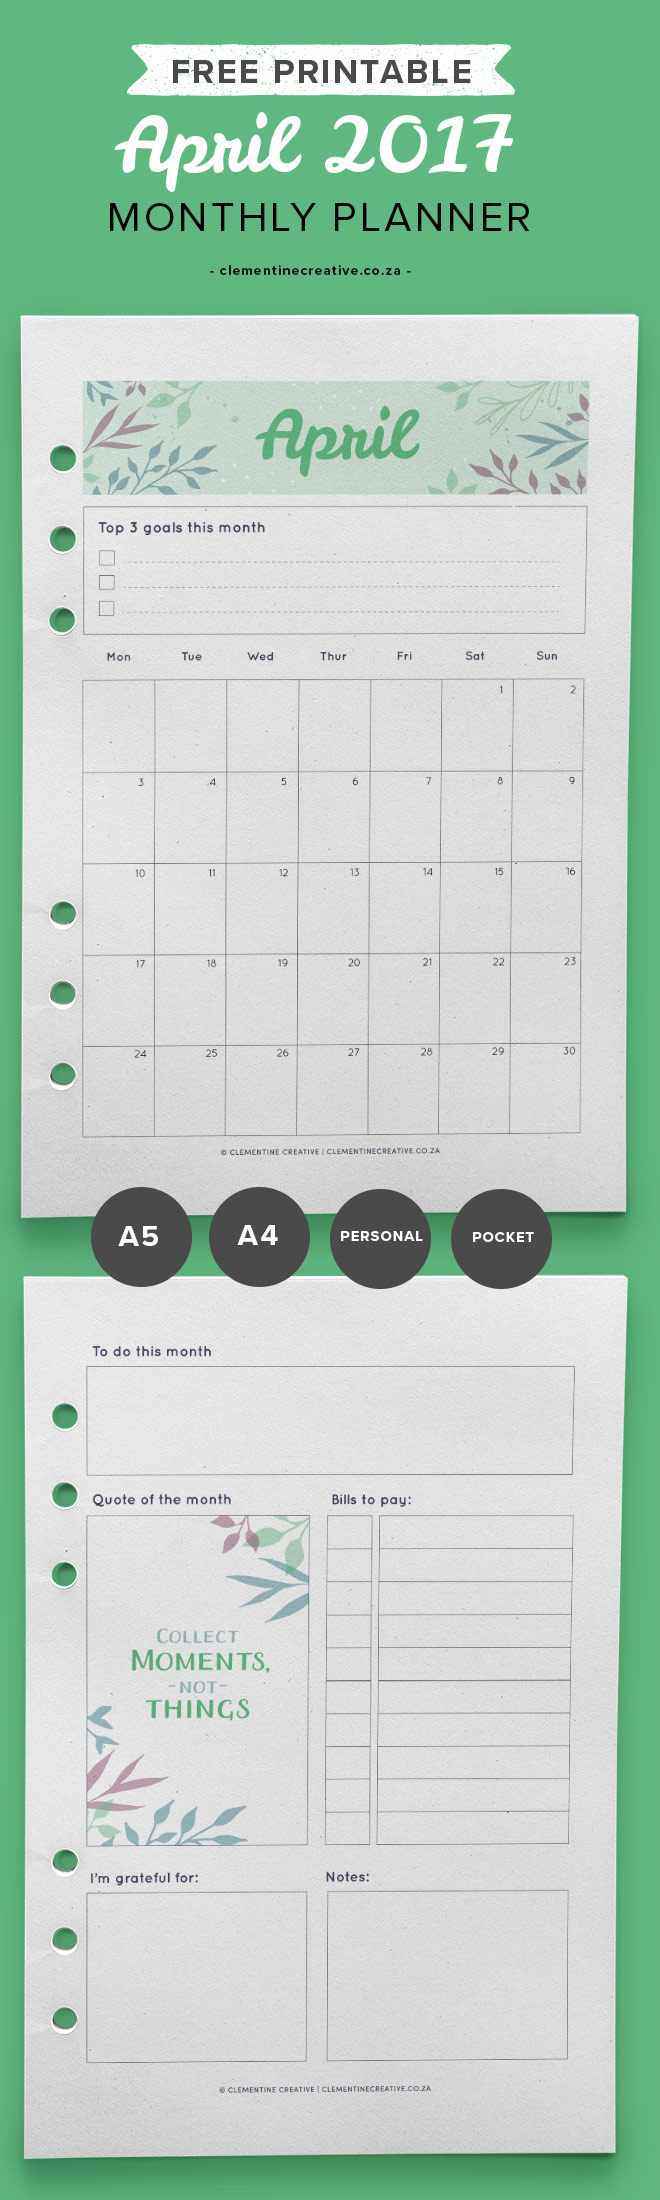 april 2017 free printable monthly planner clementine creative